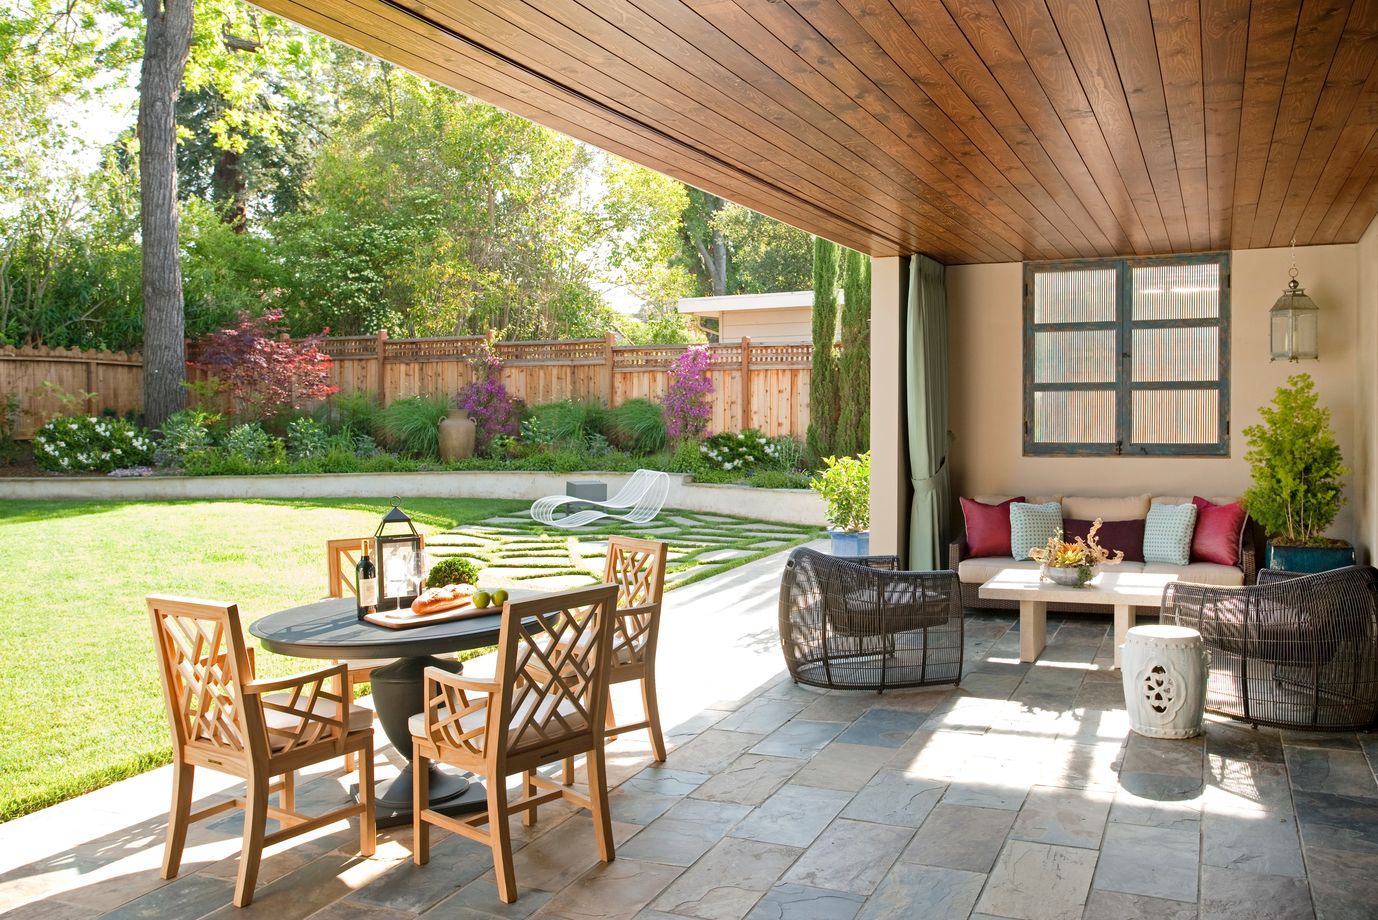 Outdoor living 8 ideas to get the most out of your space for Great outdoor patio ideas